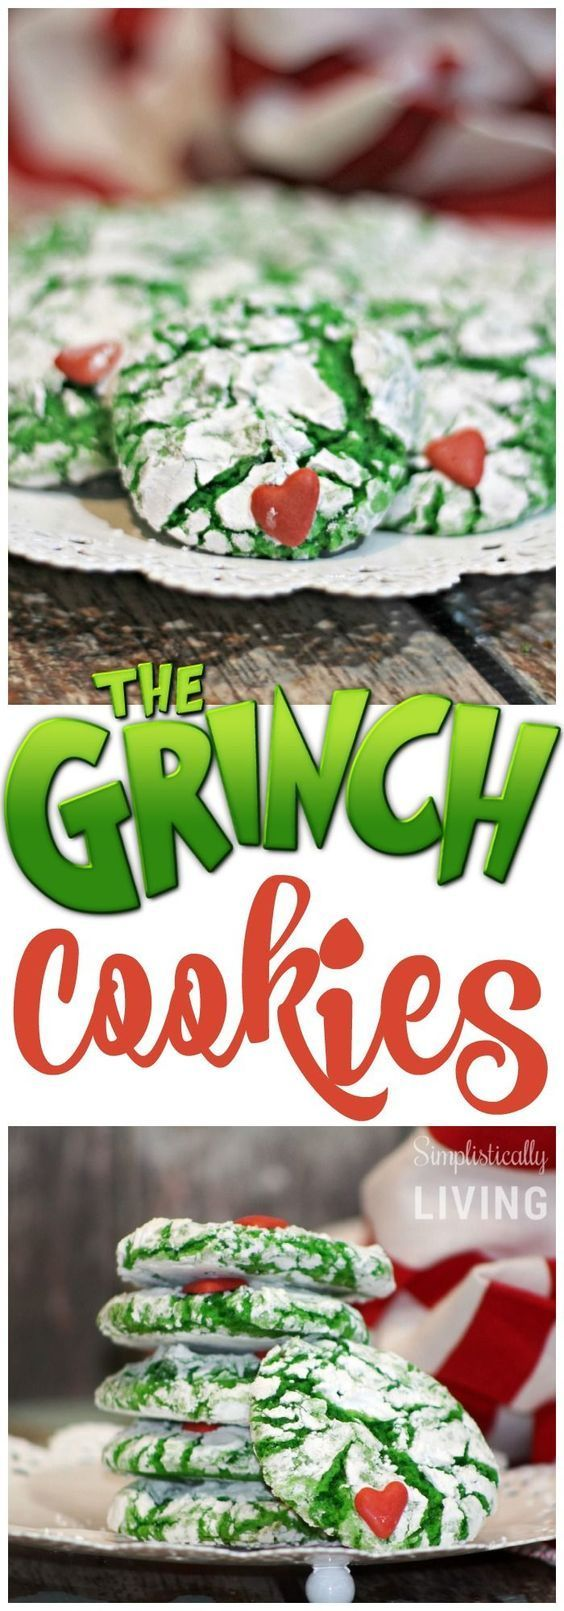 I can't wait to make these Crinkly, Cranky, Grinch Cookies from Simplistically Living...: